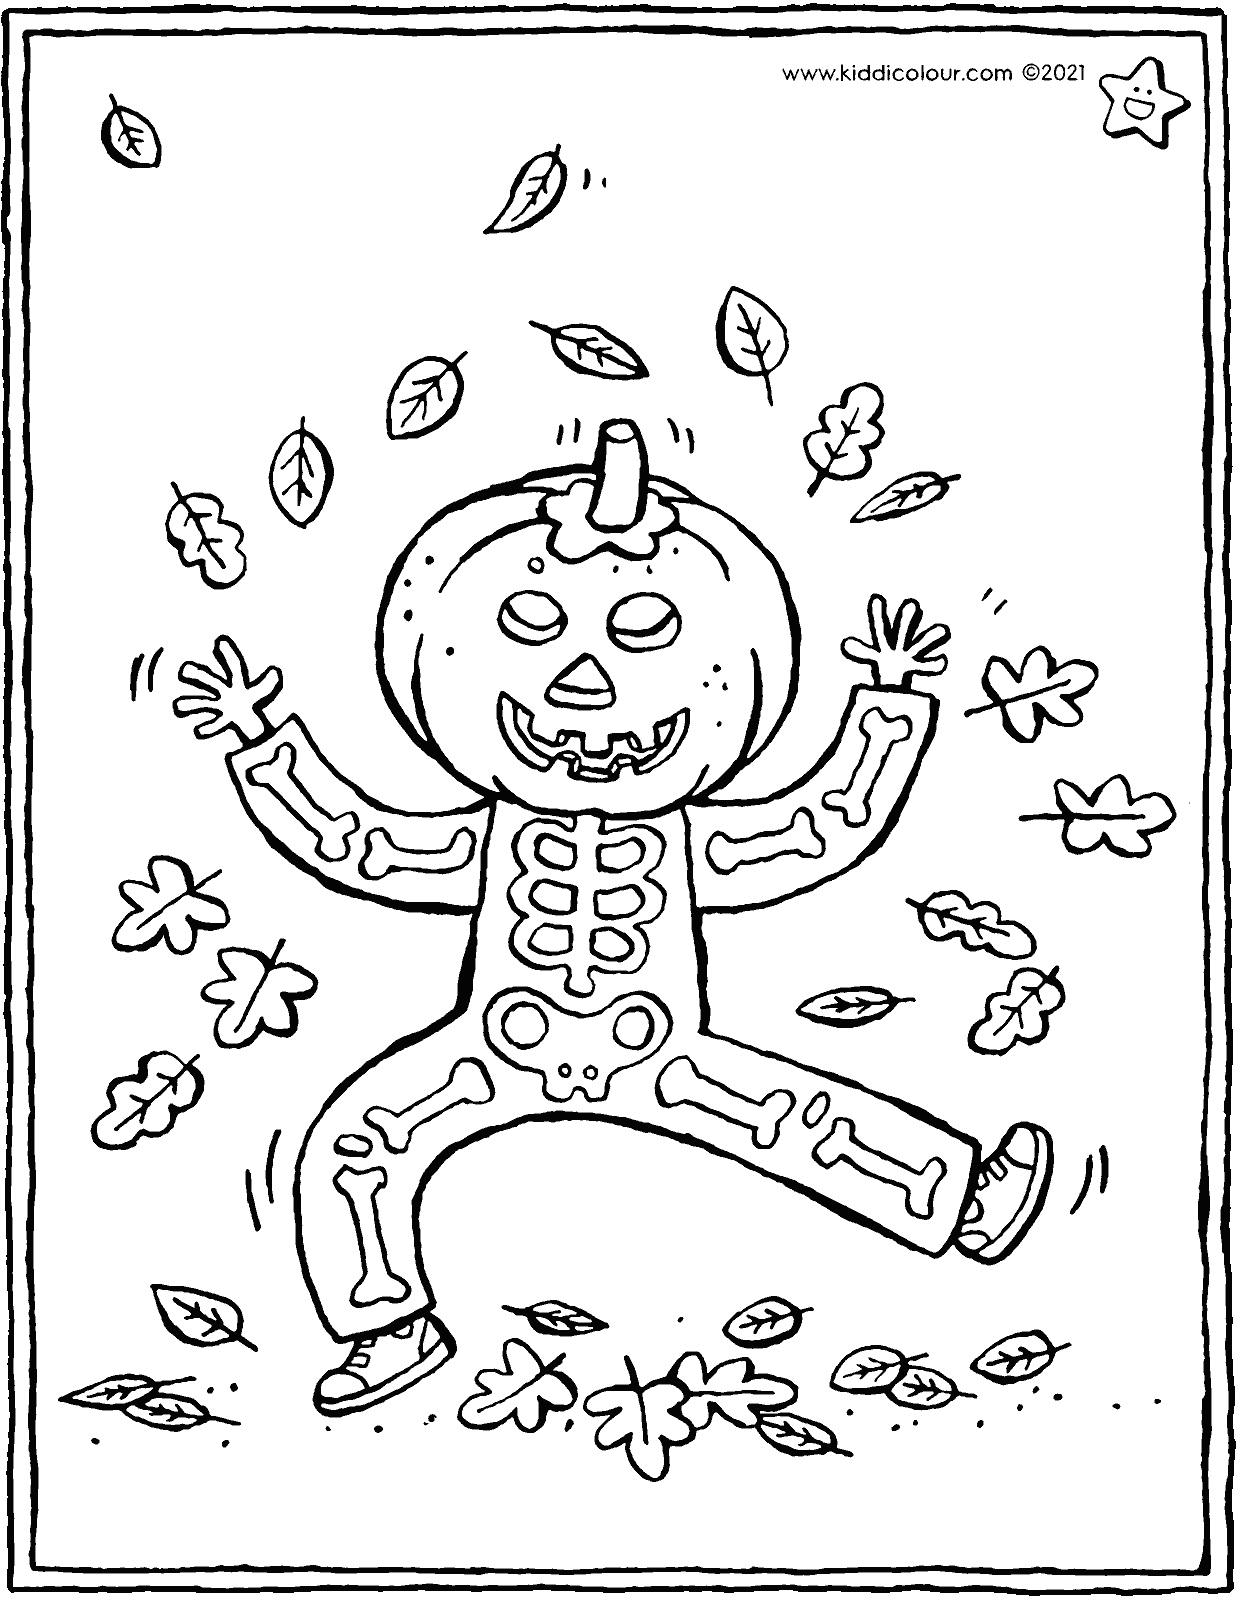 dancing Halloween pumpkin coloring page - drawing - colouring picture 01V